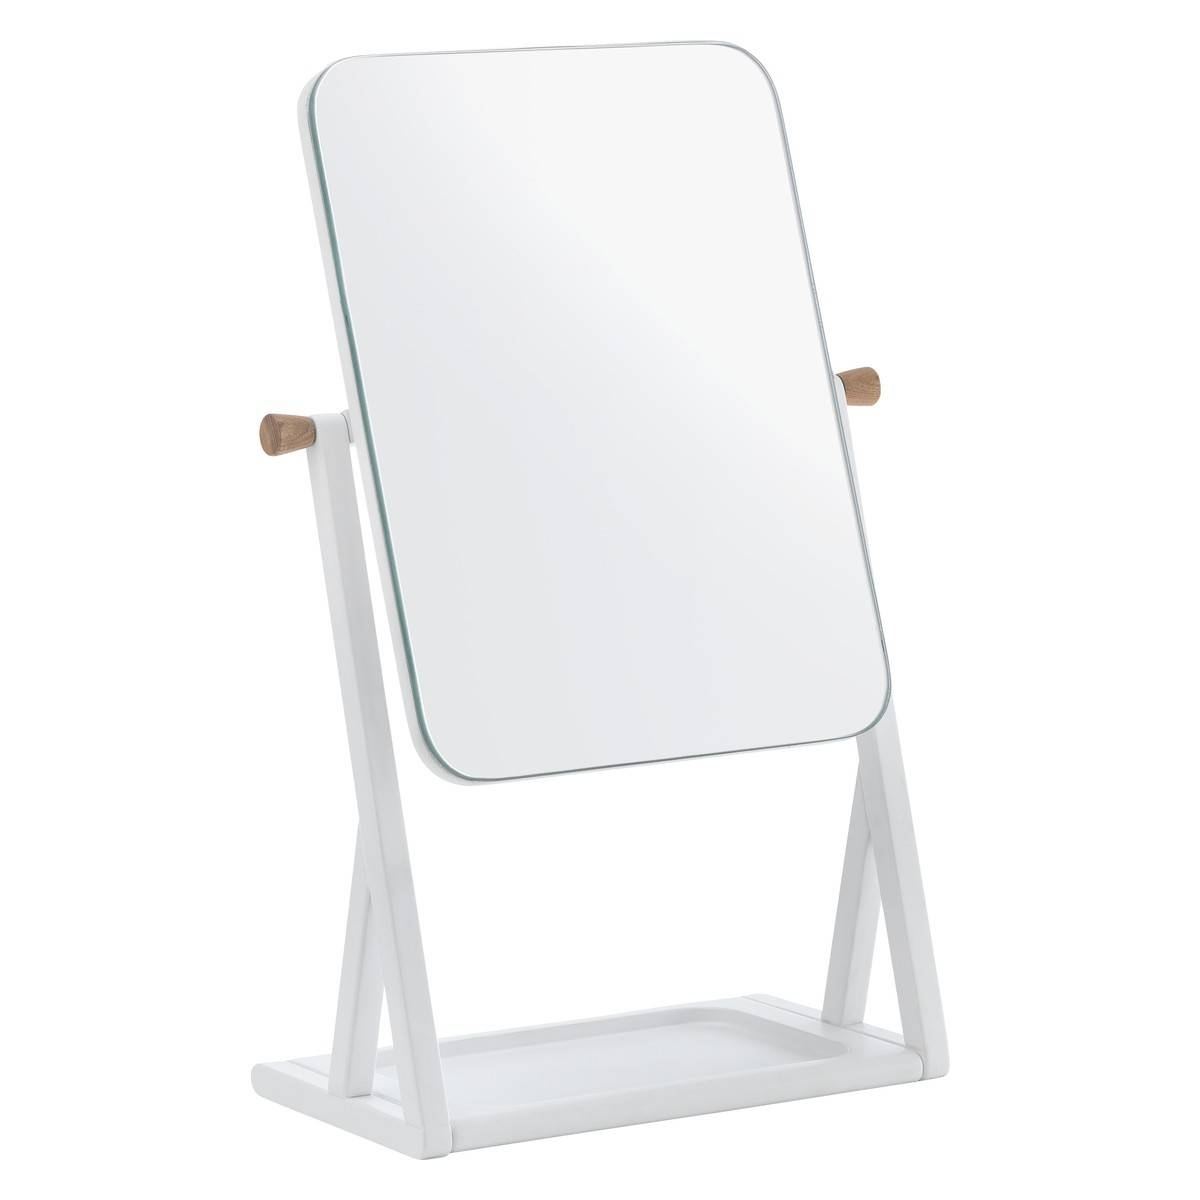 Tatsuma White Dressing Table Mirror | Buy Now At Habitat Uk in Dressing Table Mirrors (Image 22 of 25)